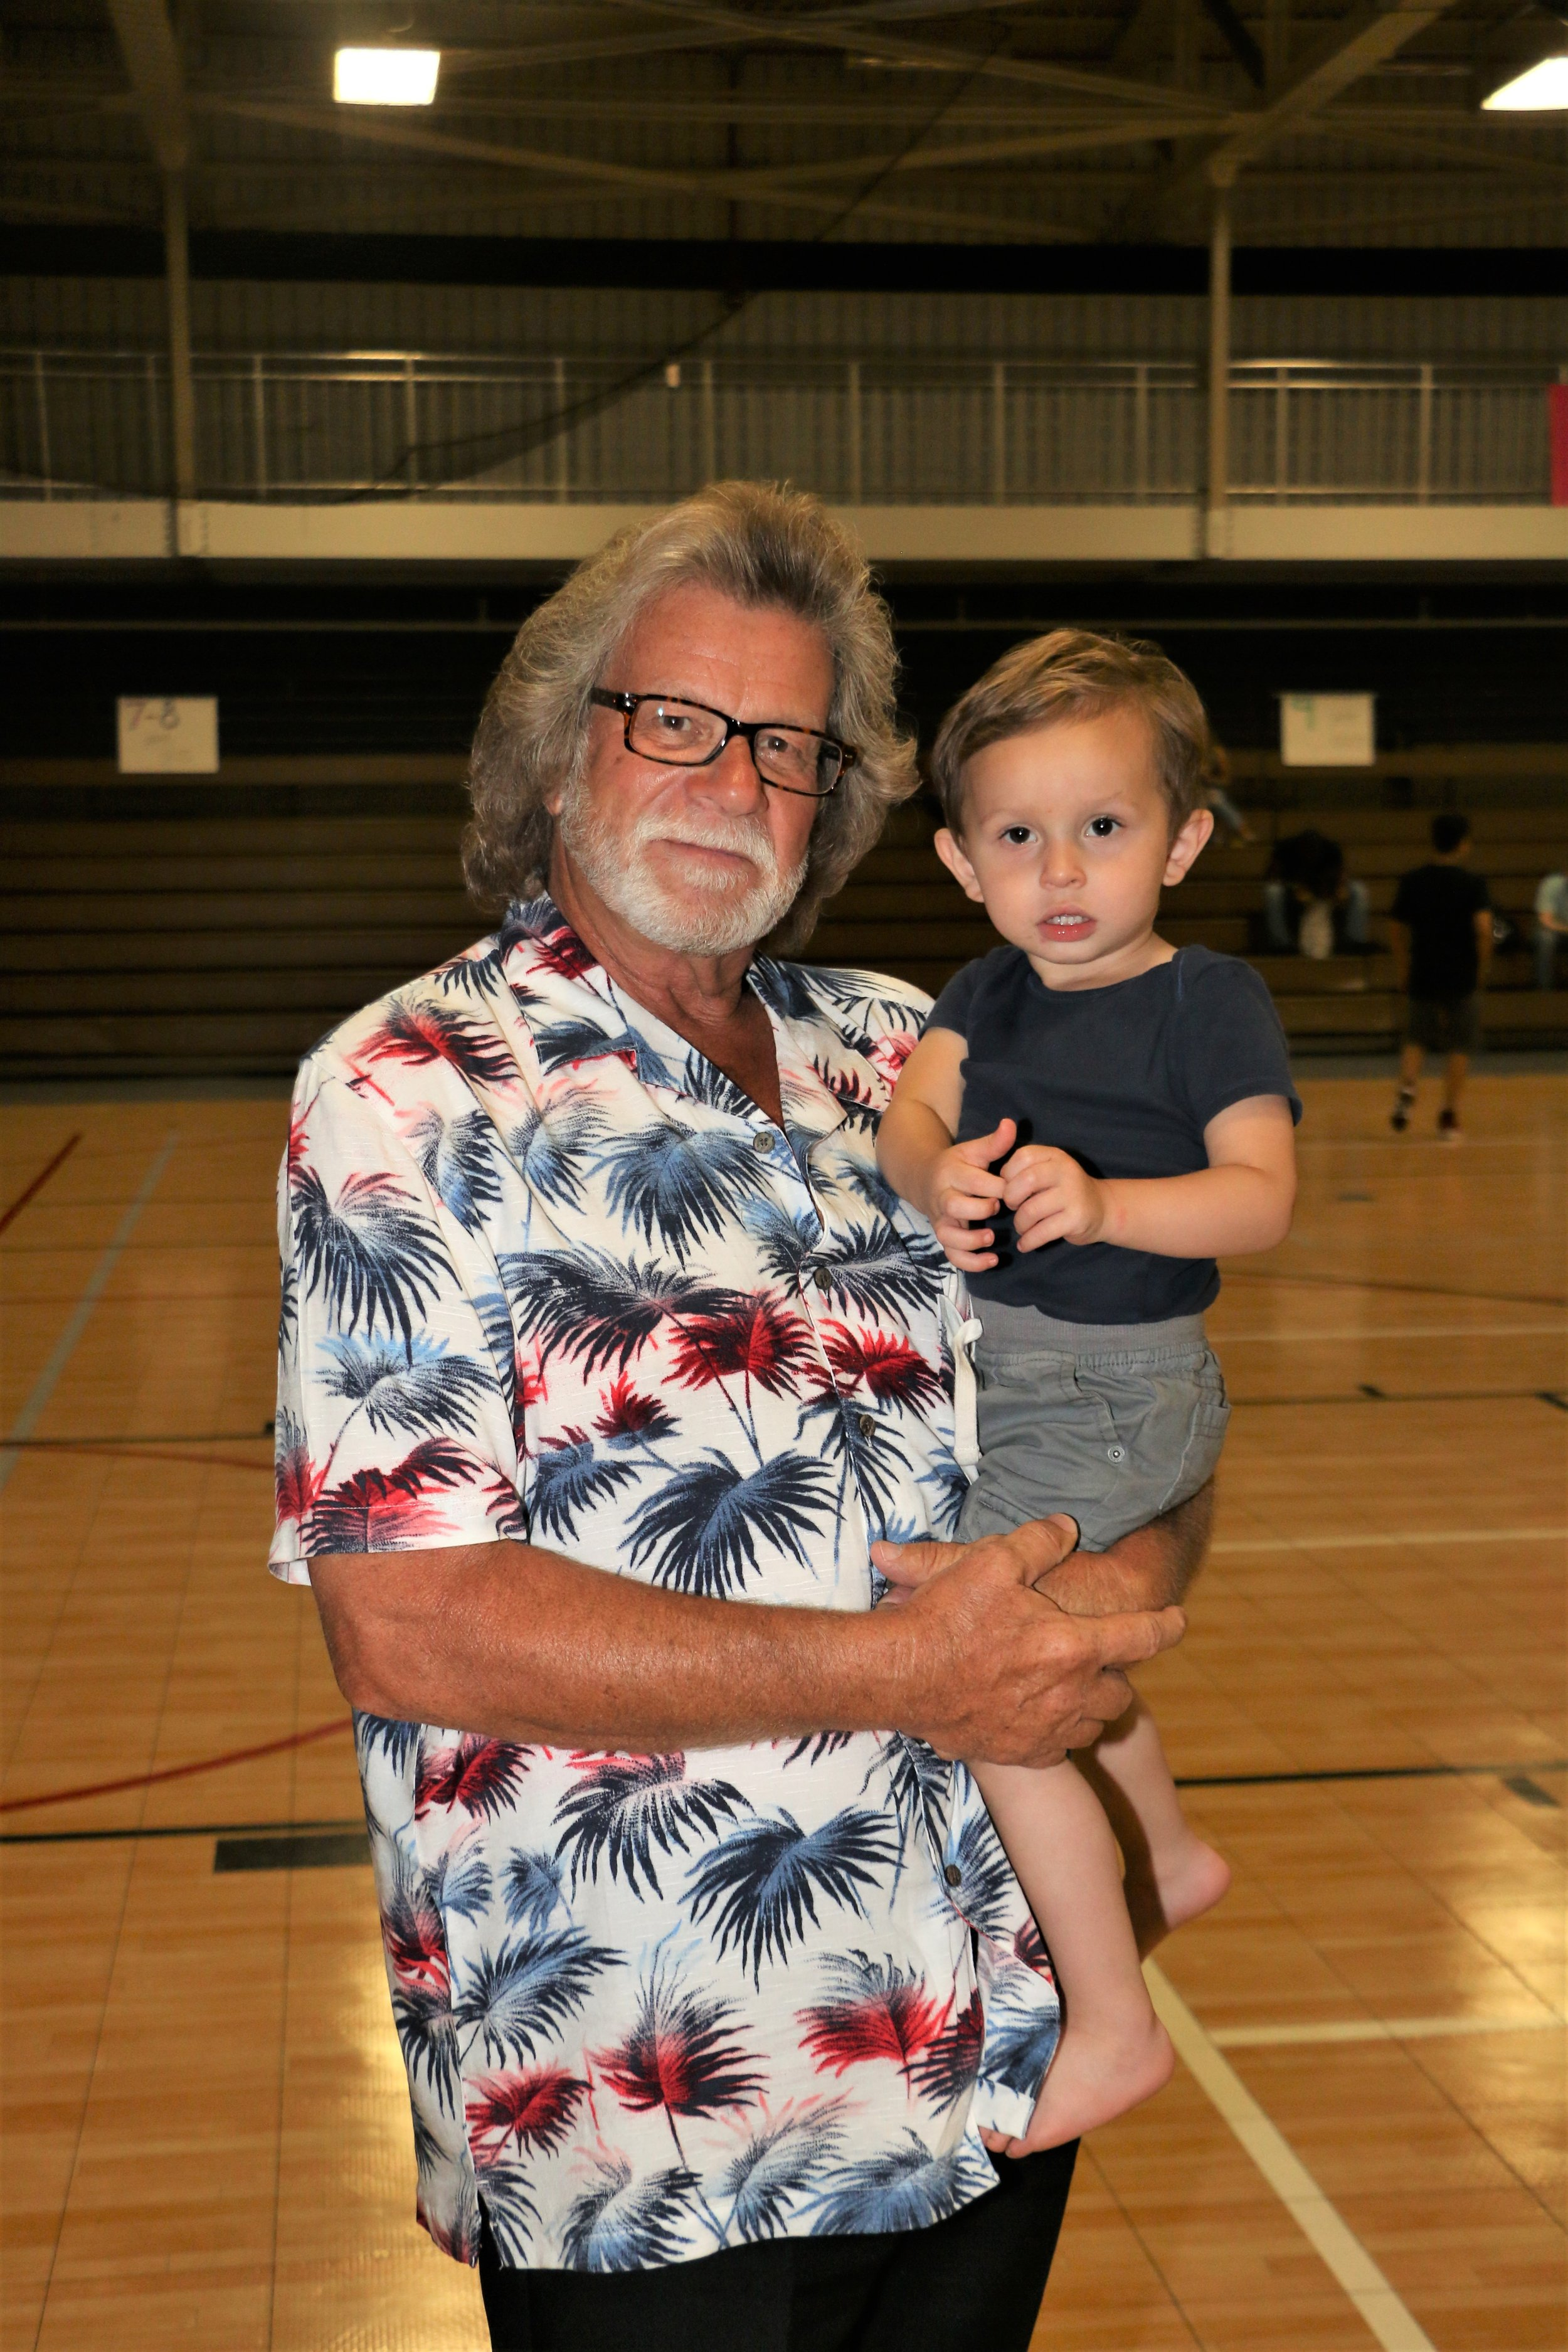 Mr. Ricolo with his grandson, Ricky, the son of Ruff Crossing and Melanie Cruise, during intermission.